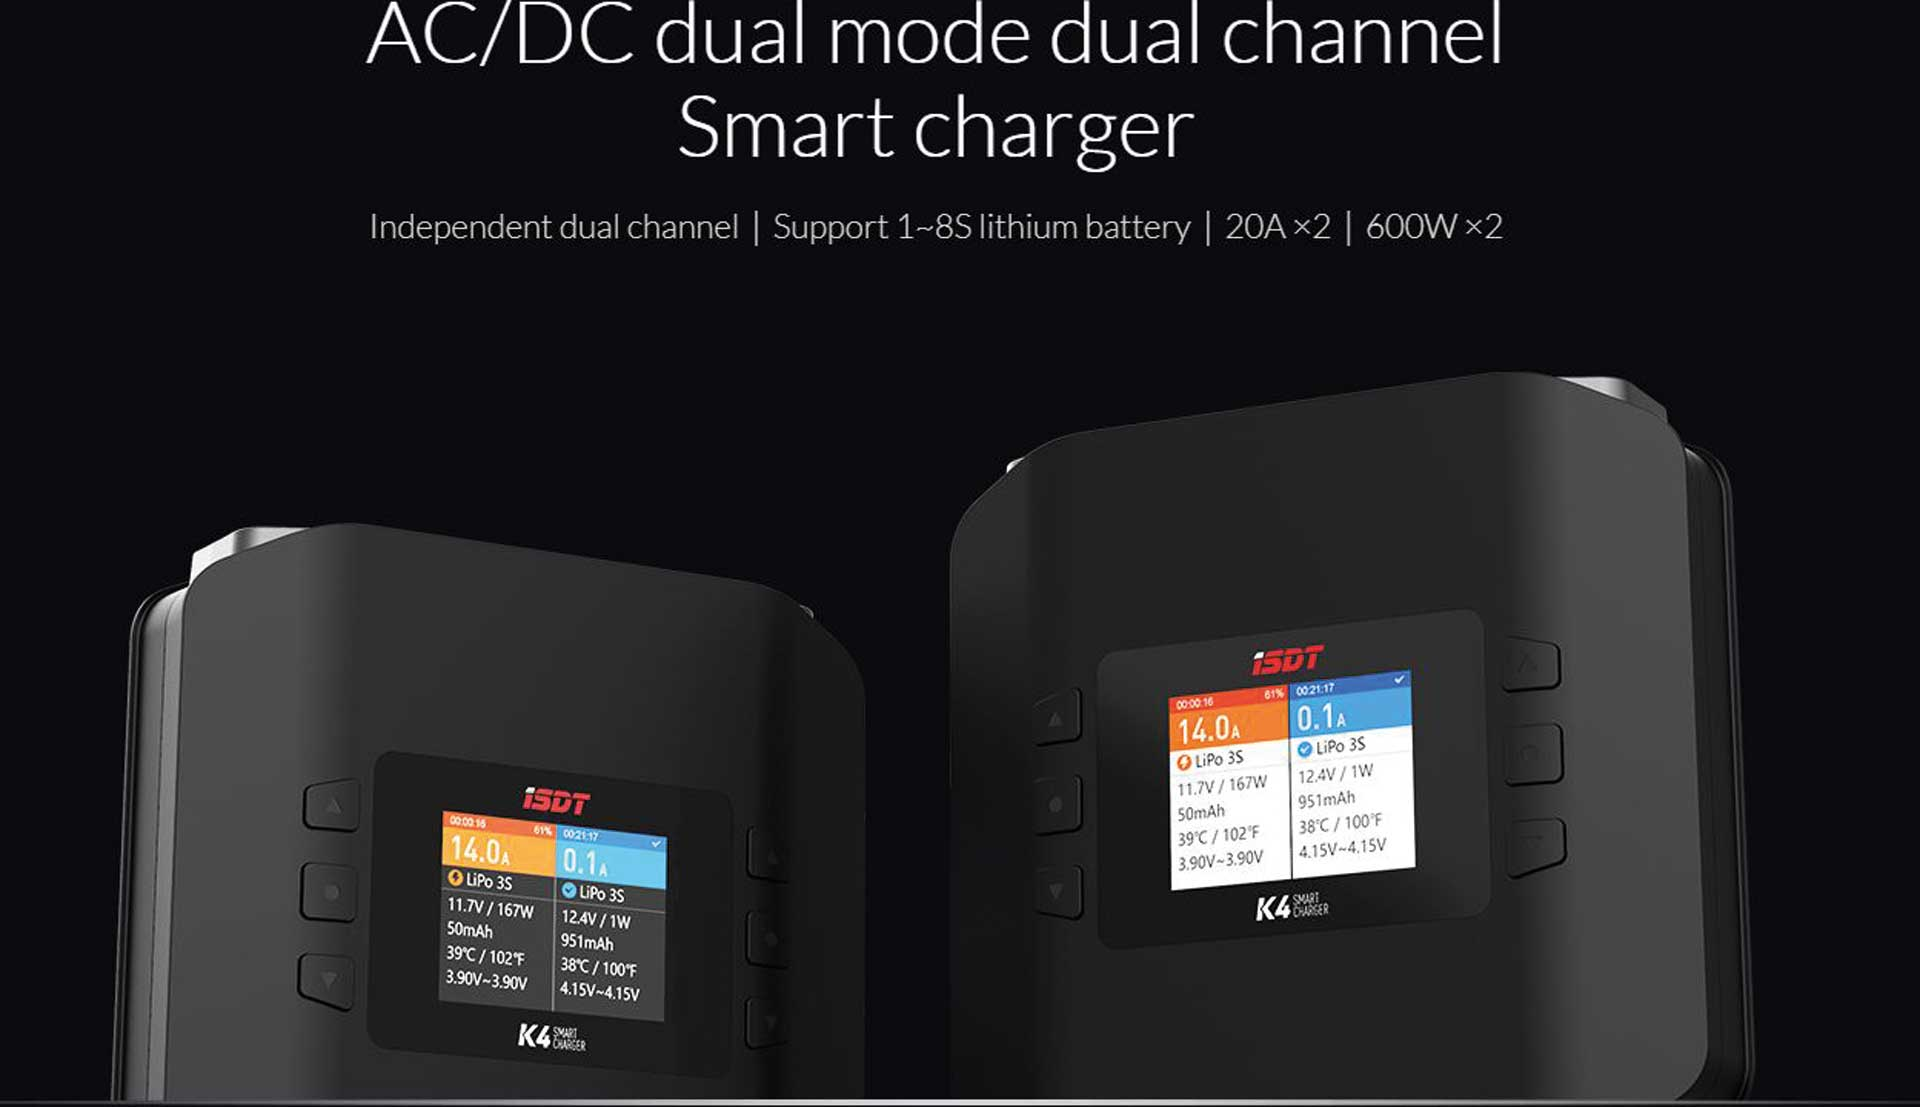 ISDT K4 Smart Charger AC/DC 1-8S / 2x 20A 2x 600W